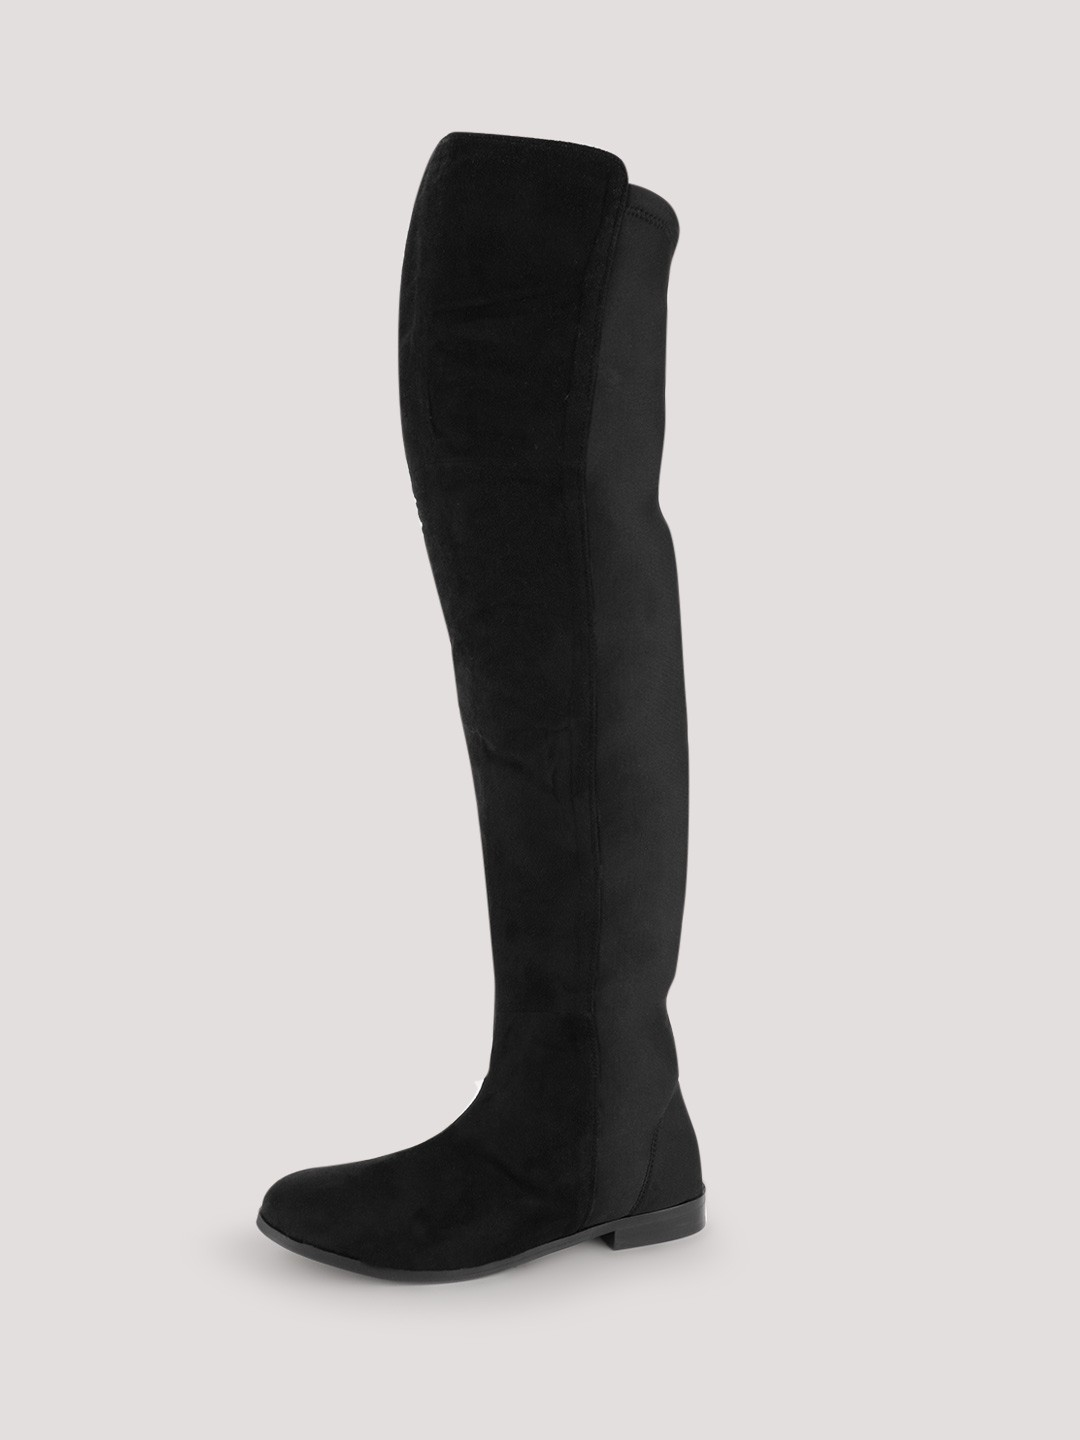 stores that sell thigh high boots yu boots